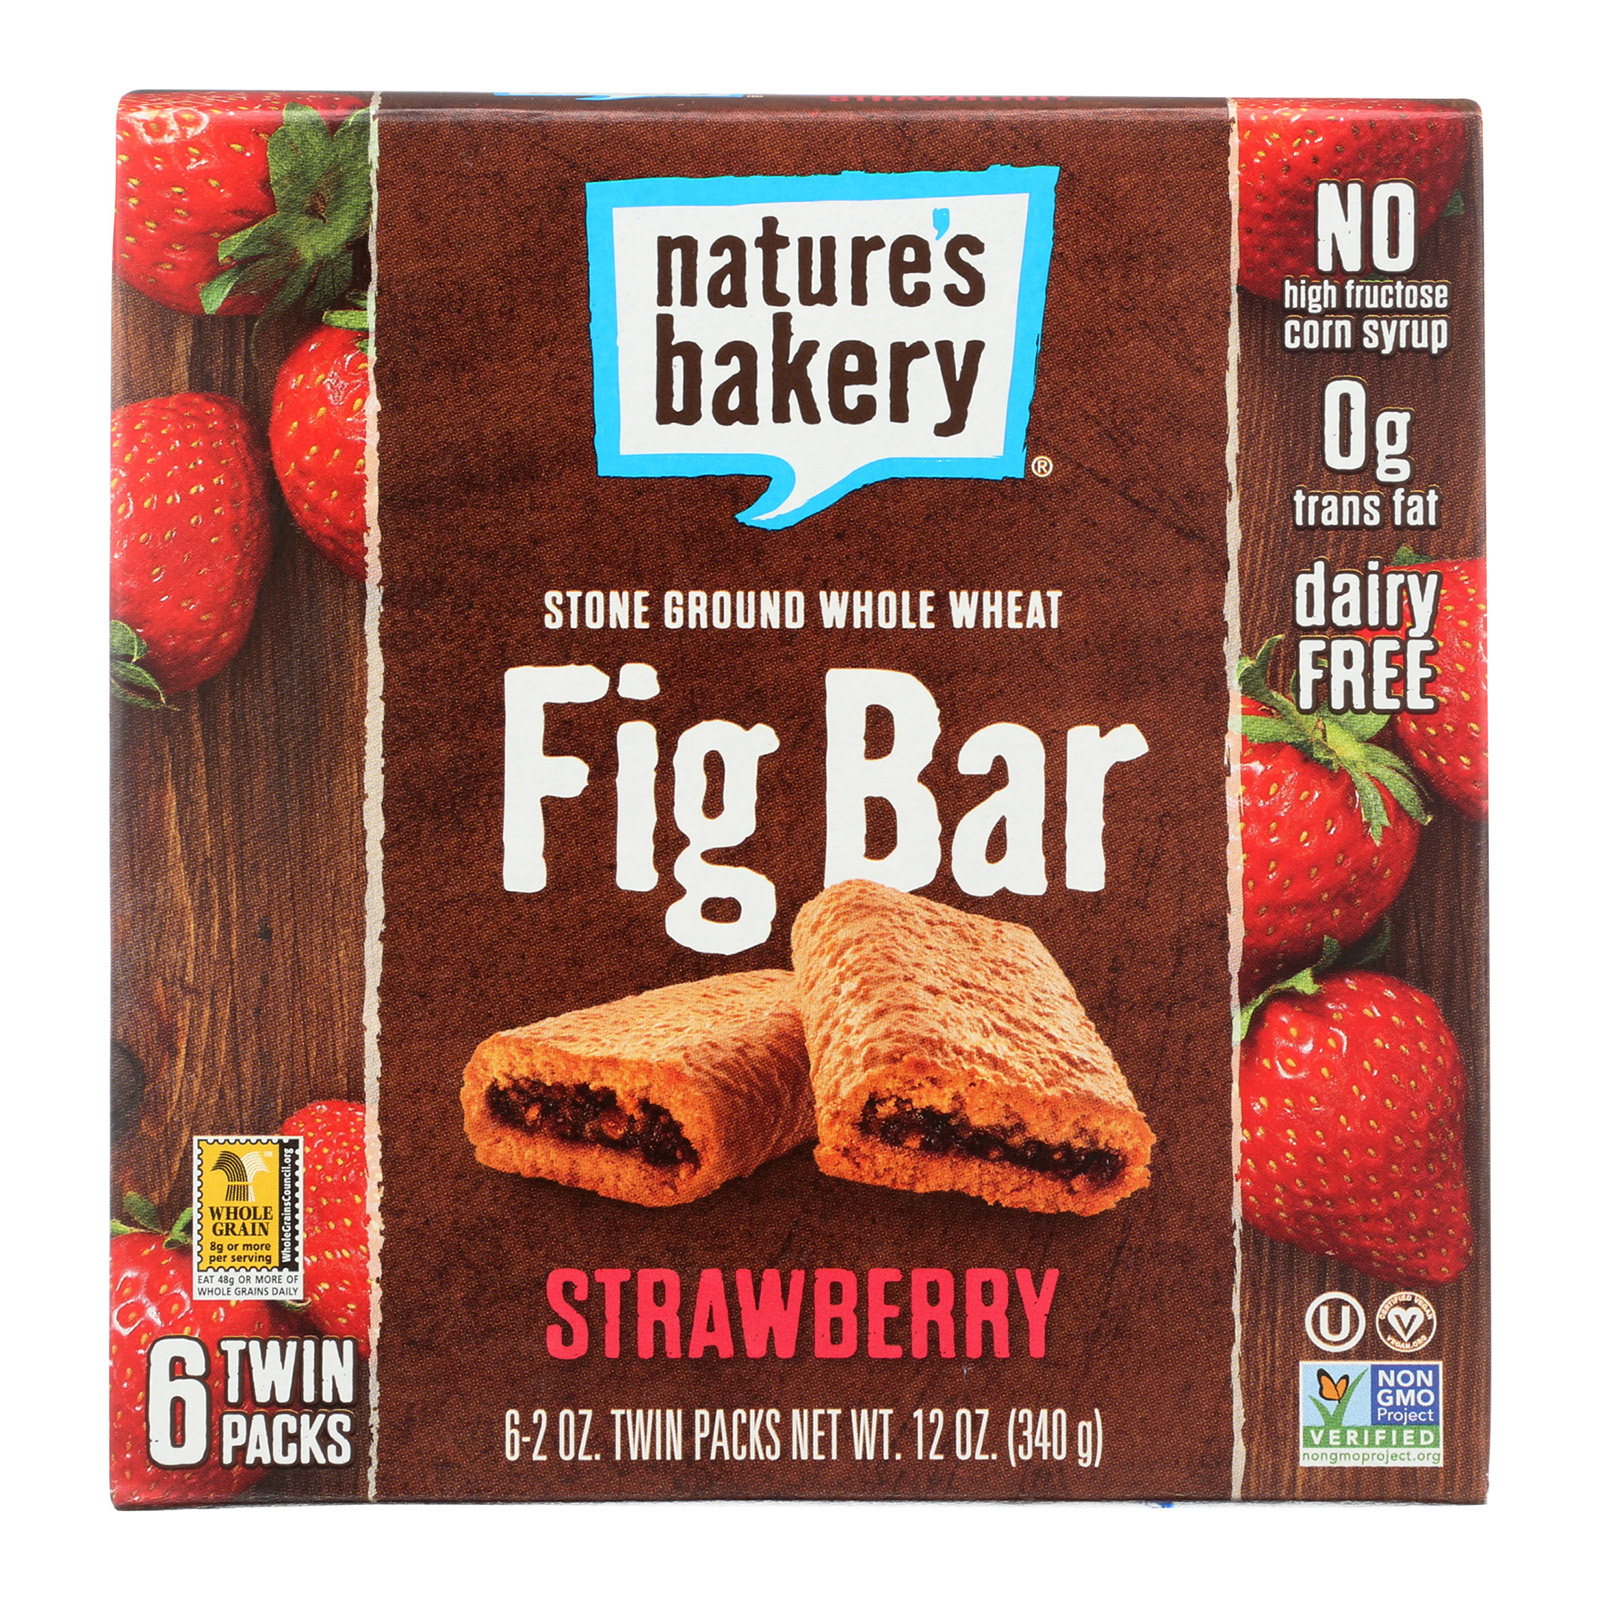 Nature's Bakery Stone Ground Whole Wheat Fig Bar - Strawberry - Case Of 12 - 2 Oz.